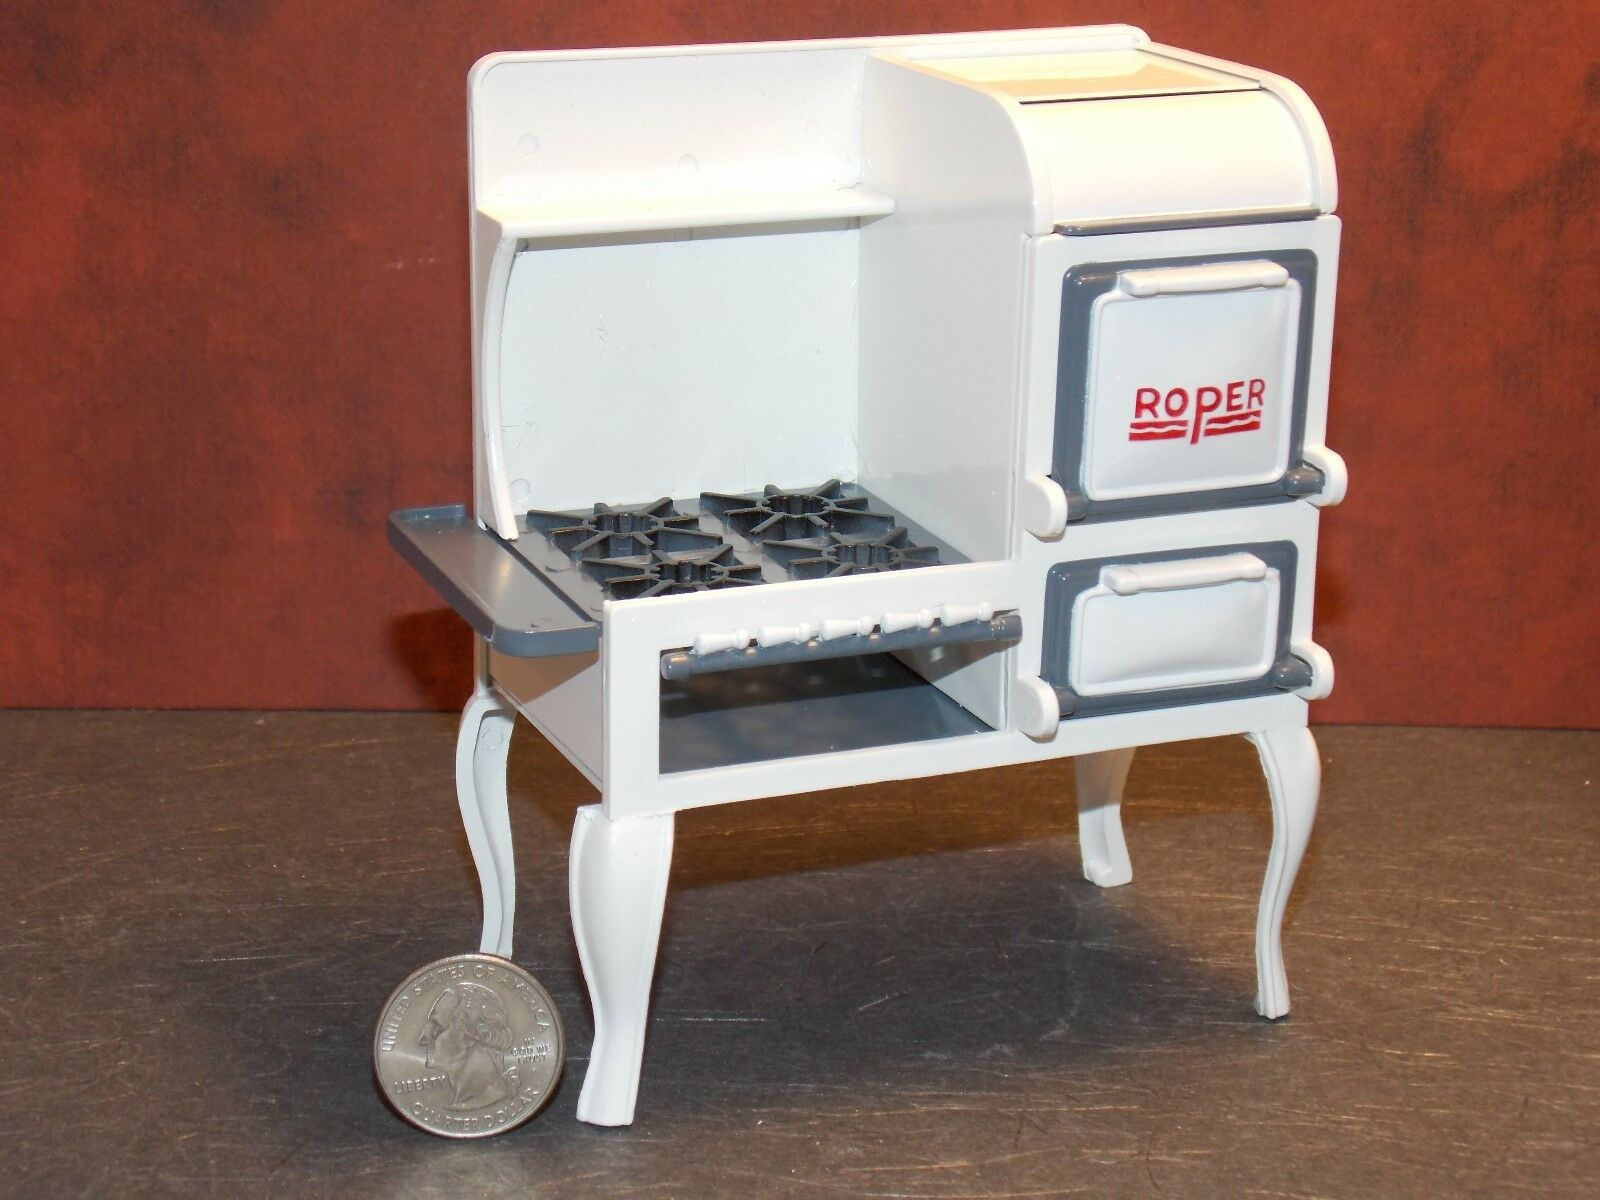 Dollhouse Miniature Roper Range Cook Stove Kitchen 1:12 scale G77 Dollys Gallery